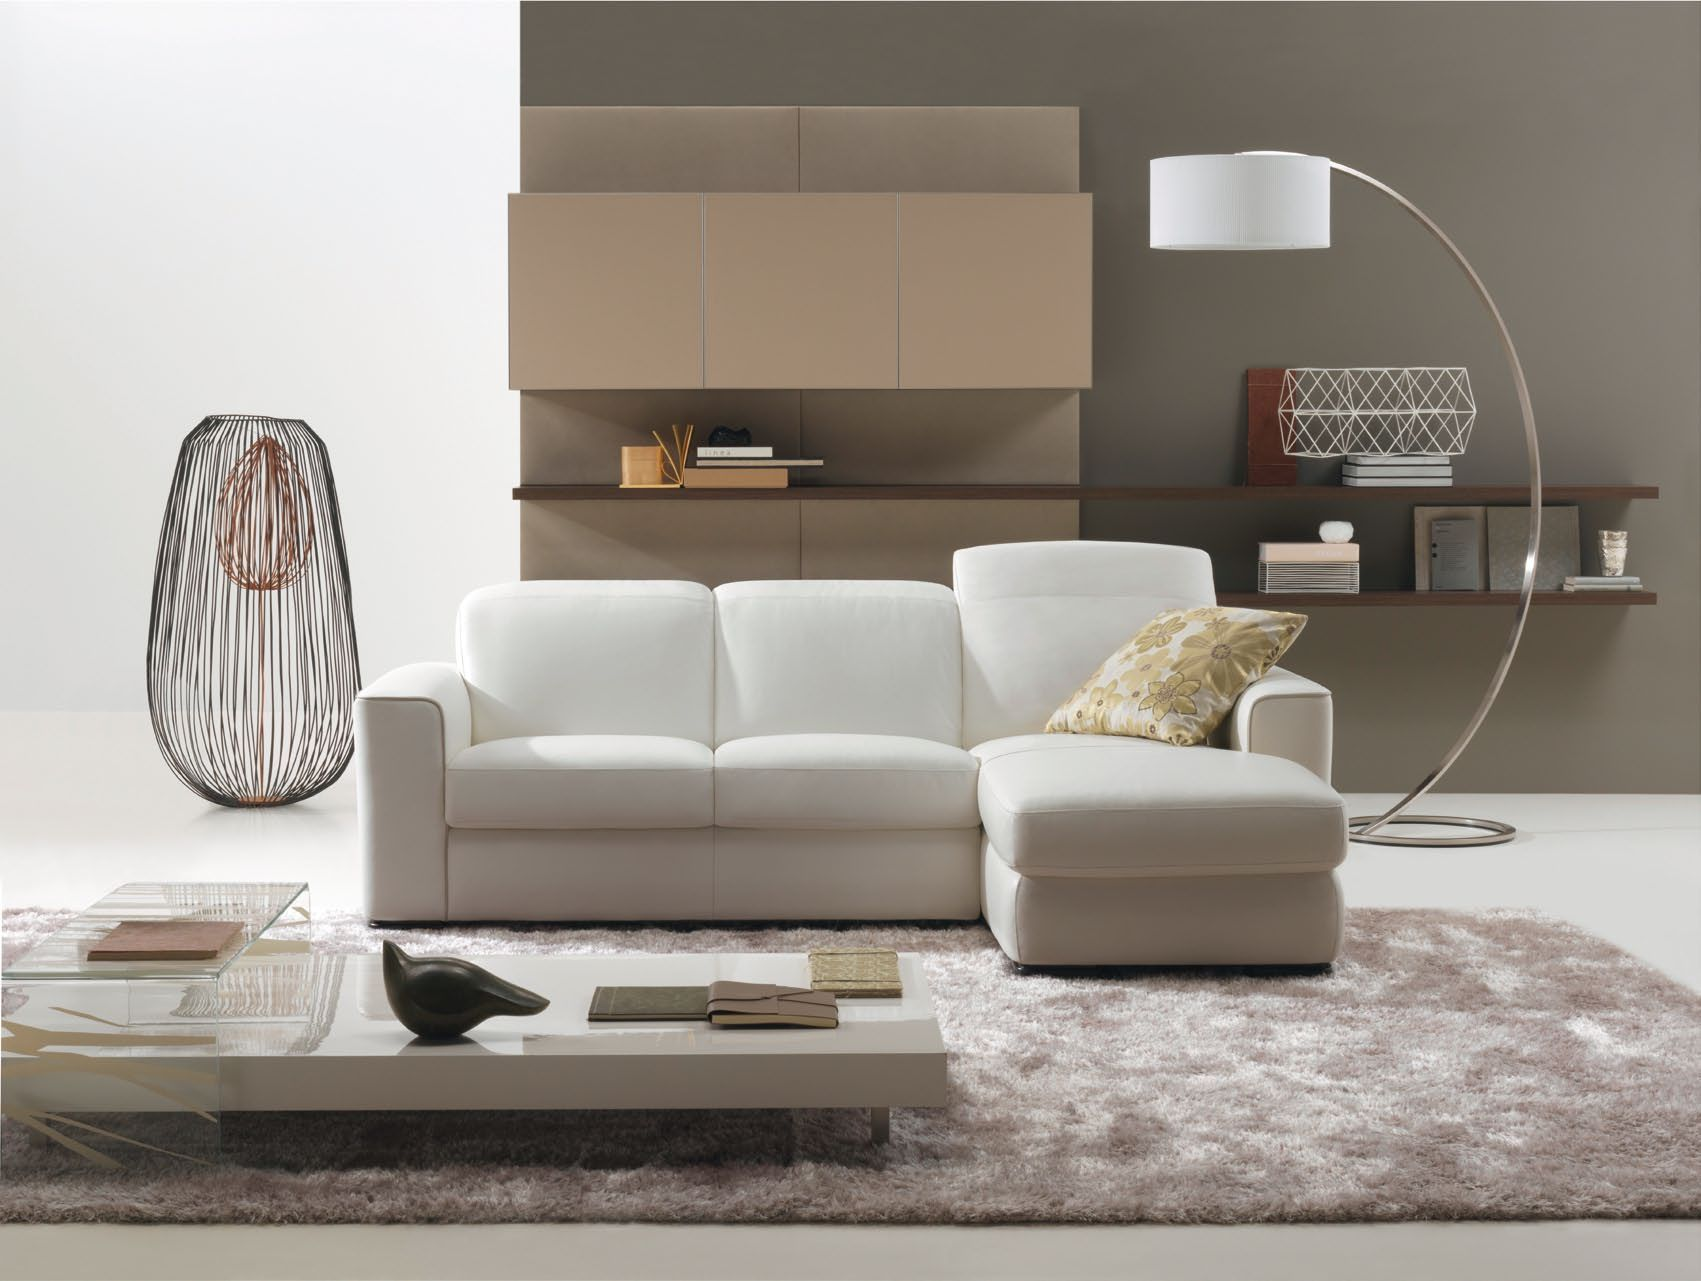 How to Use a Low Coffee Table Coffee Tables Furniture